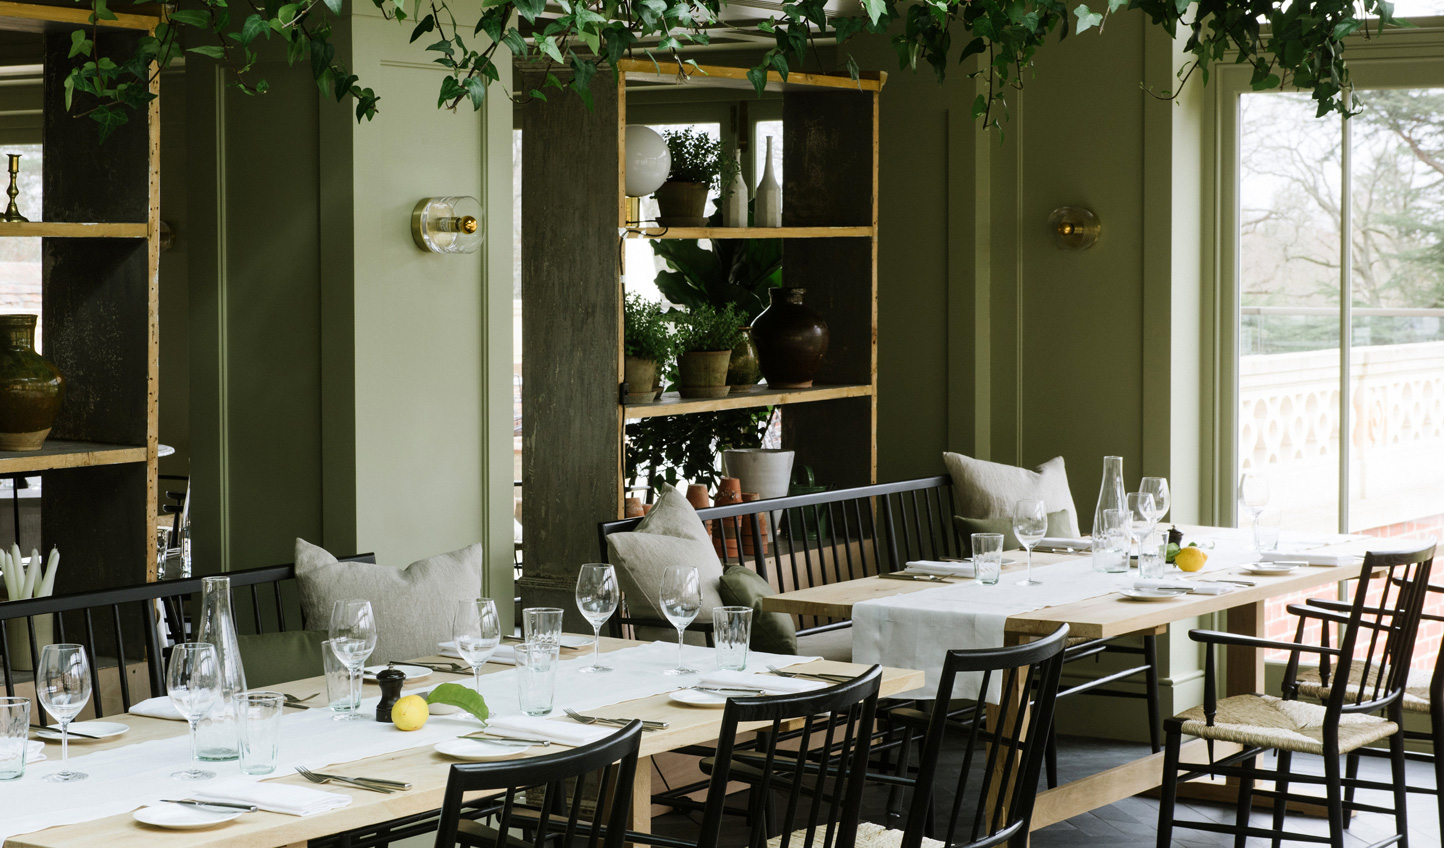 Skye Gyngell places emphasis on the simplicity of homegrown ingredients at Marle